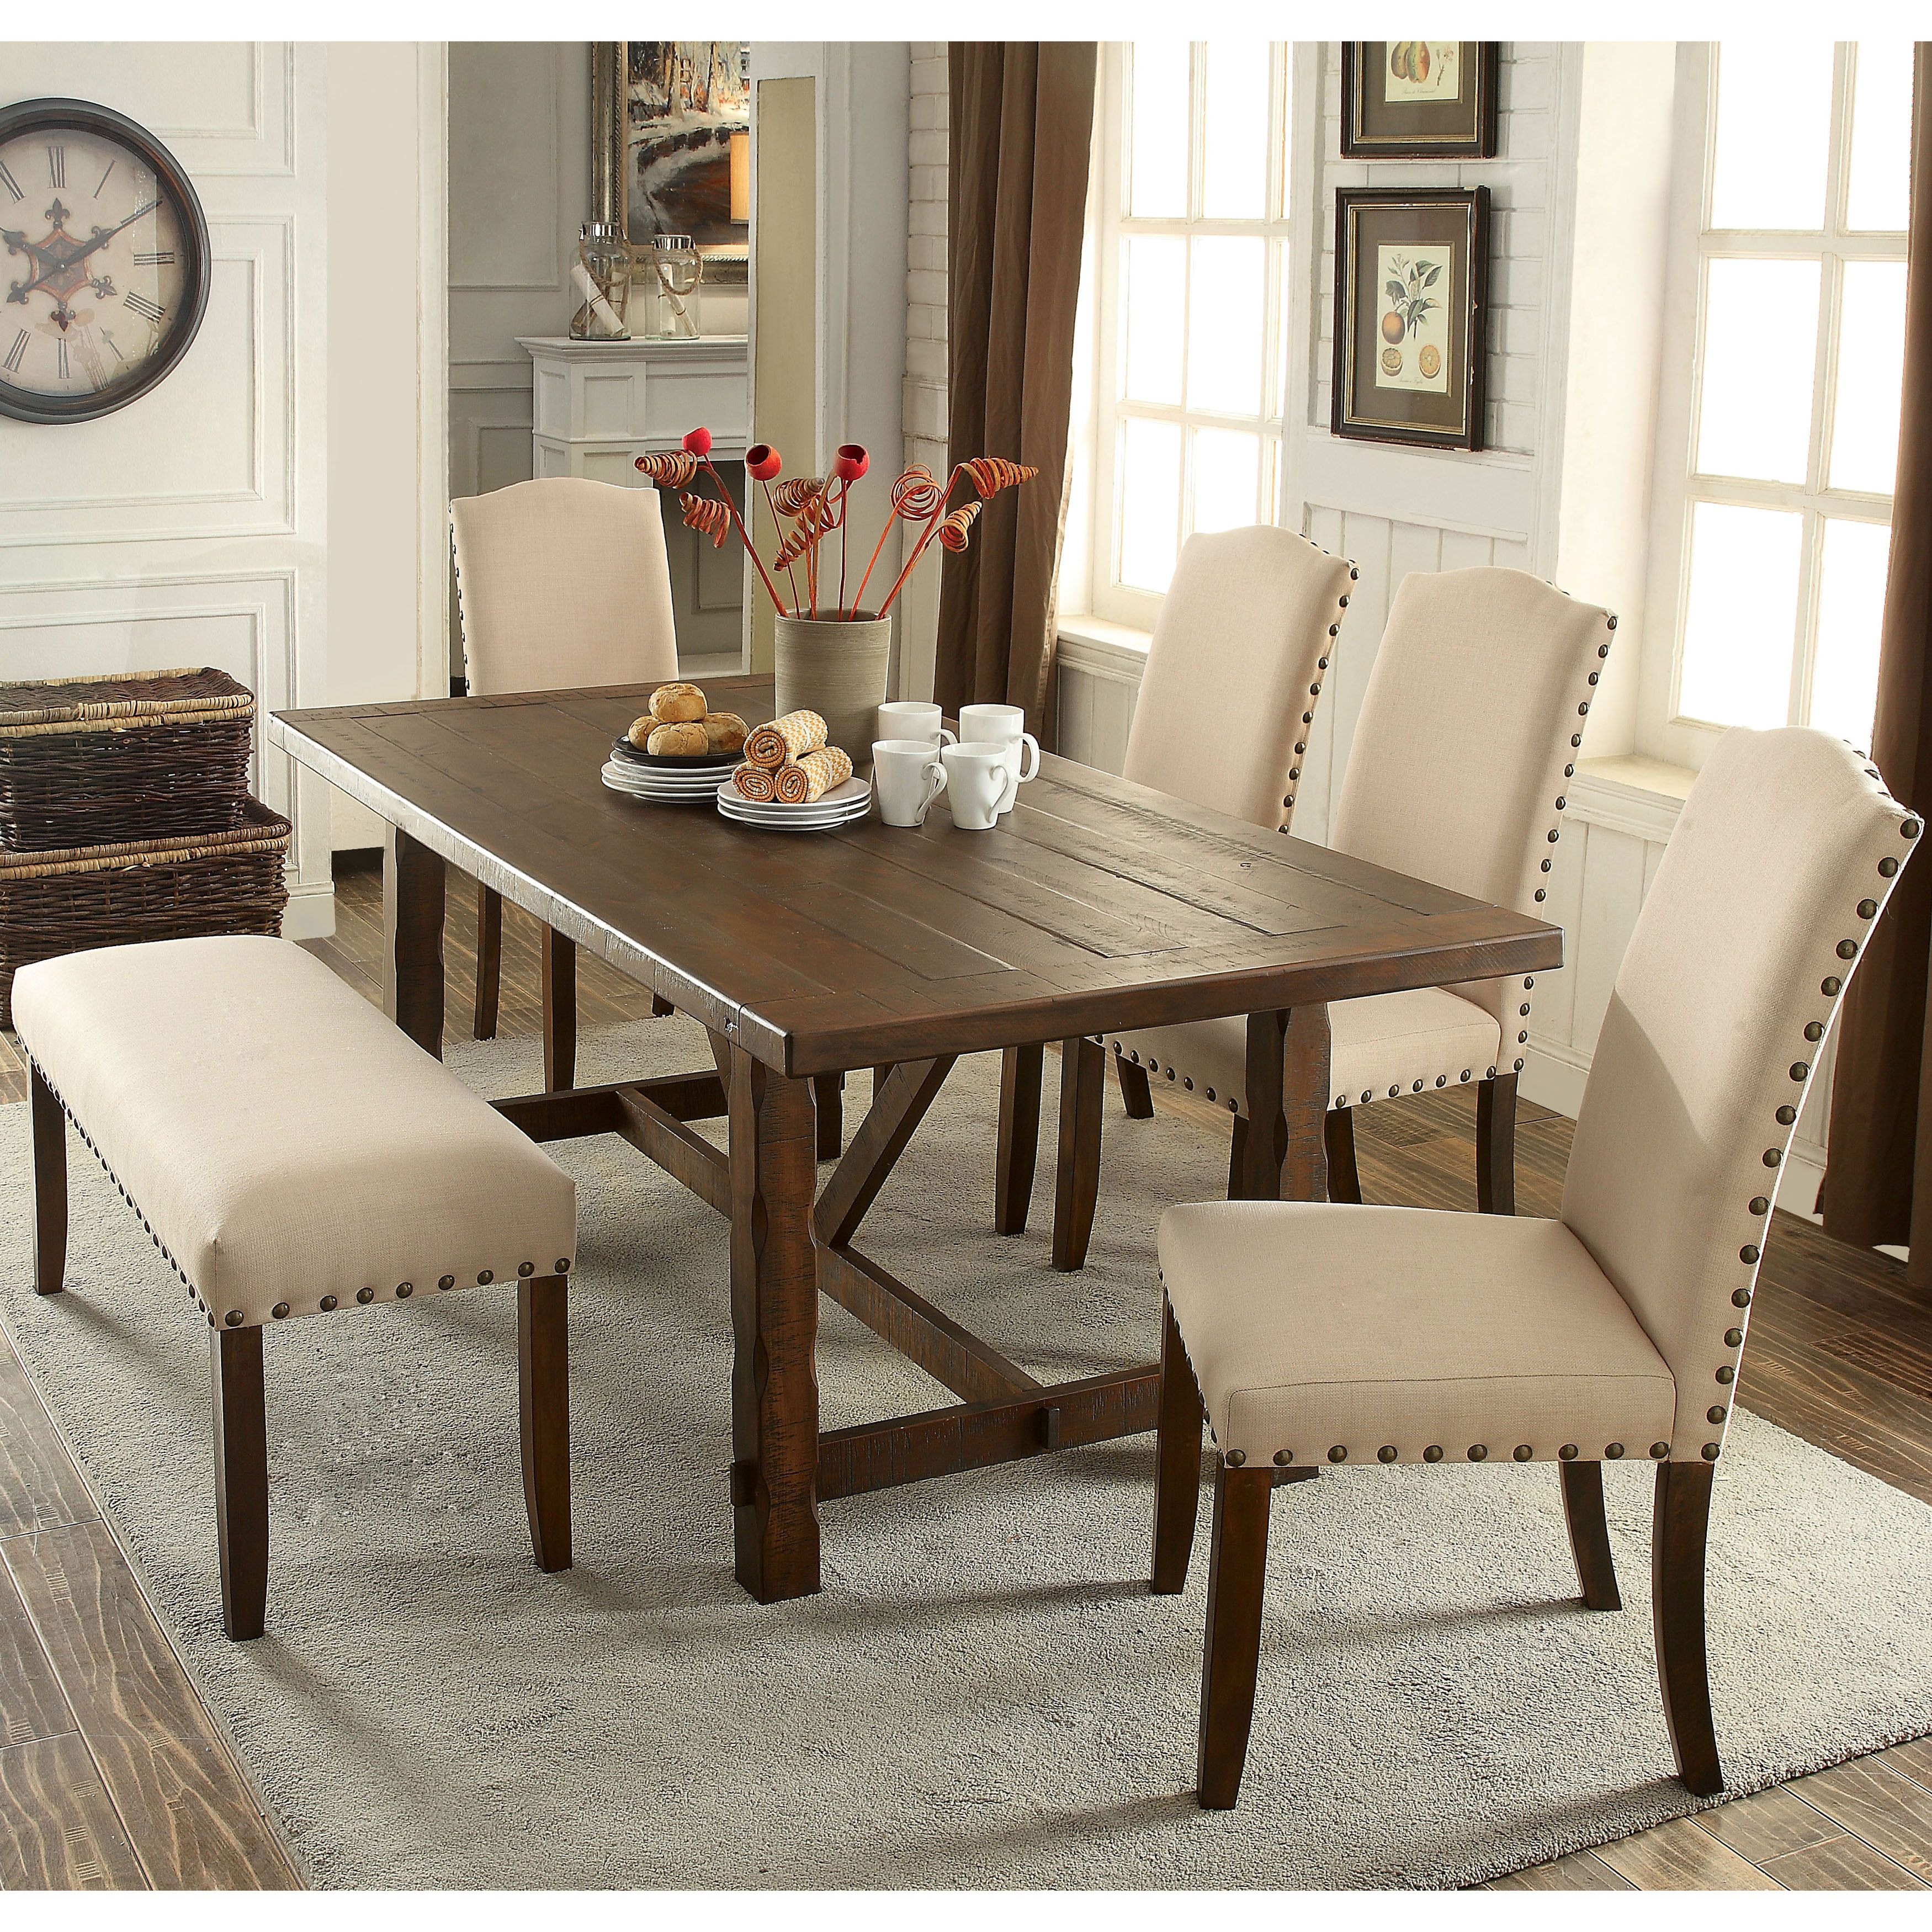 Dining Table Sets Deals: Furniture Of America Felicity 6-piece Rustic Walnut Dining